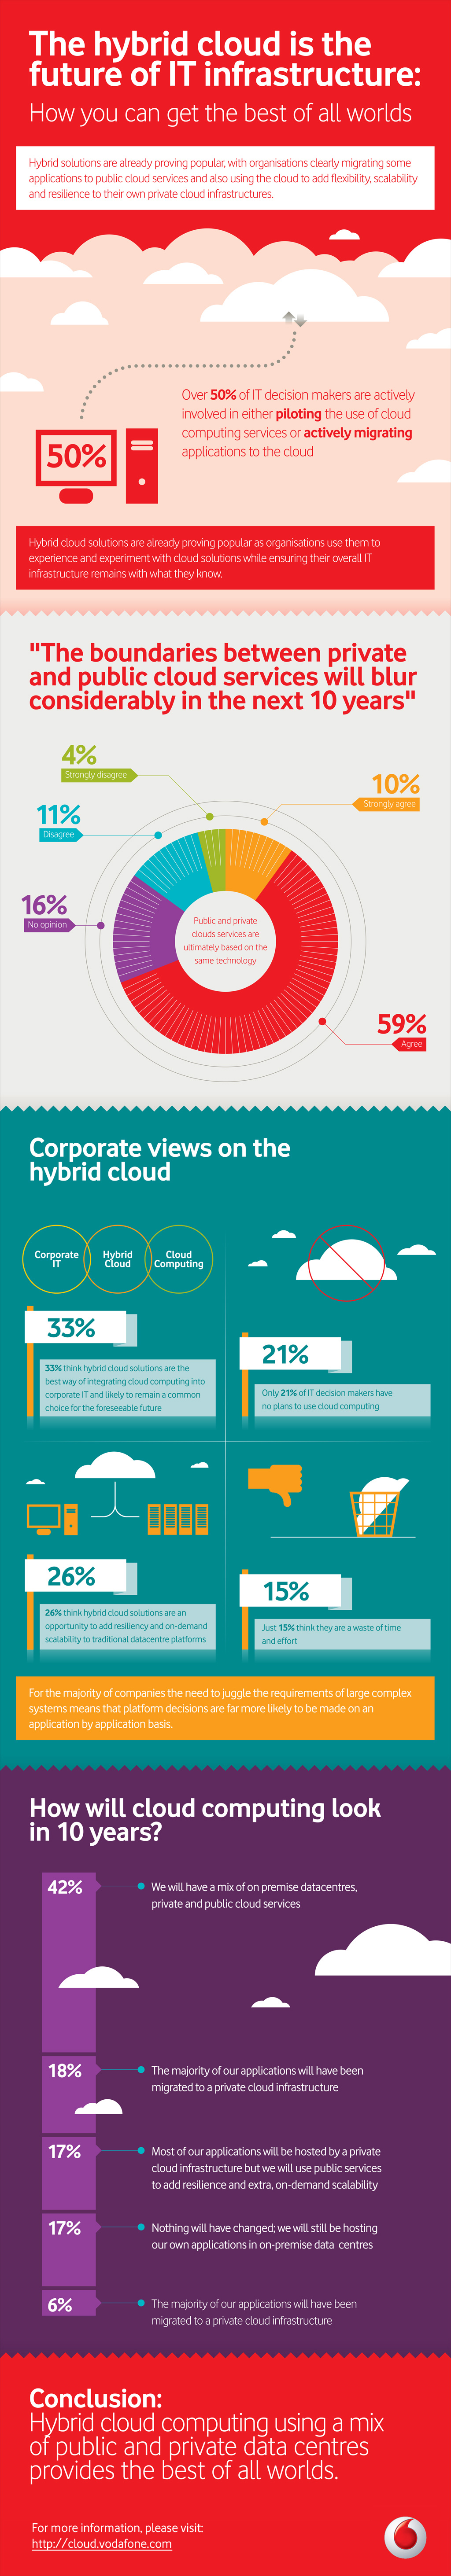 Hybrid Cloud Infographic Is The Hybrid Cloud The Future Of It Infrastructure Find Out What People Think For More I Hybrid Cloud Public Cloud Cloud Computing